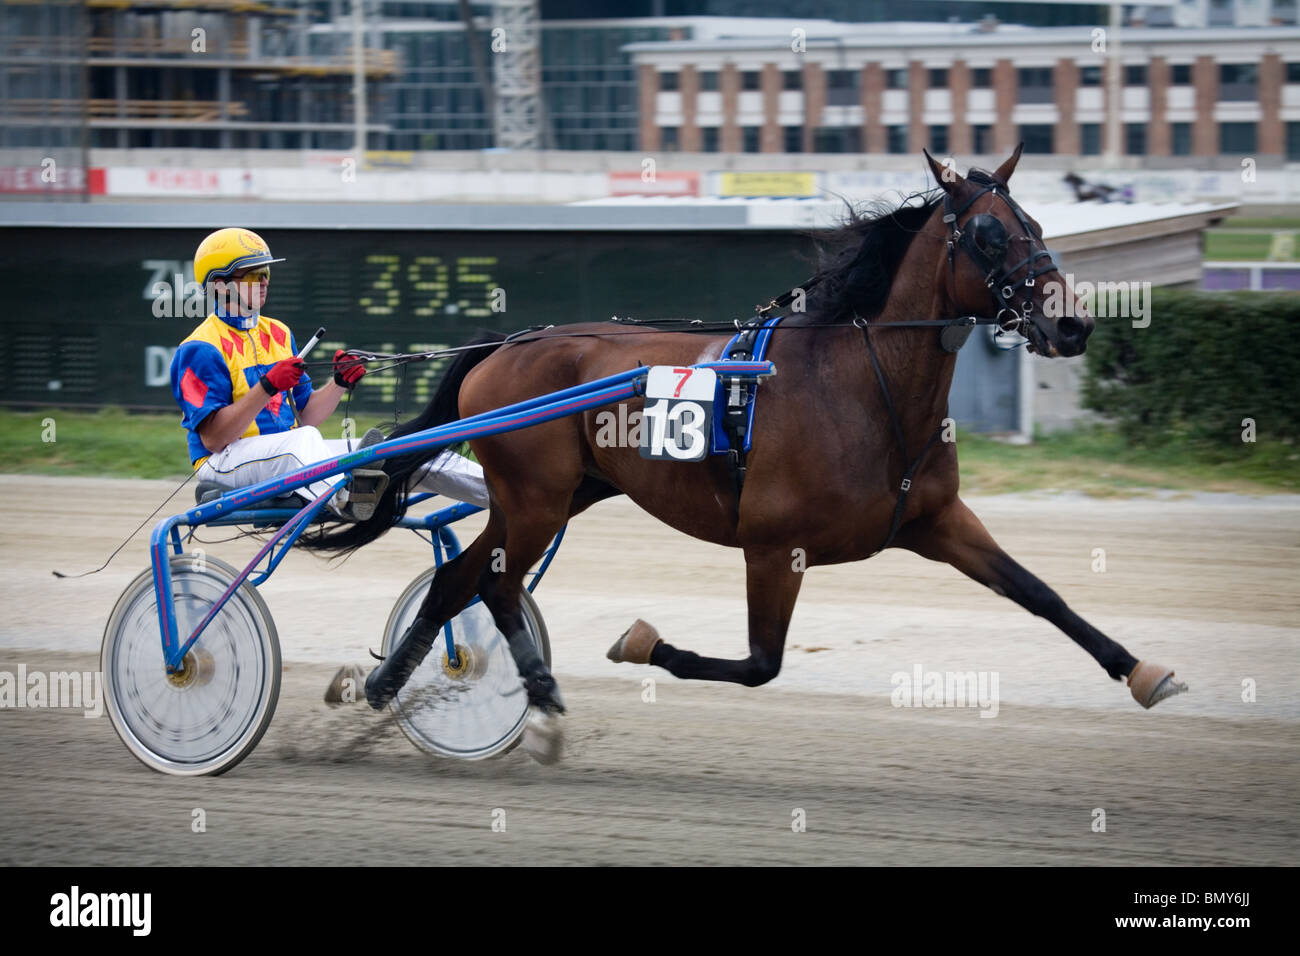 Trotting racer at the Krieau, Vienna, Austria - Stock Image